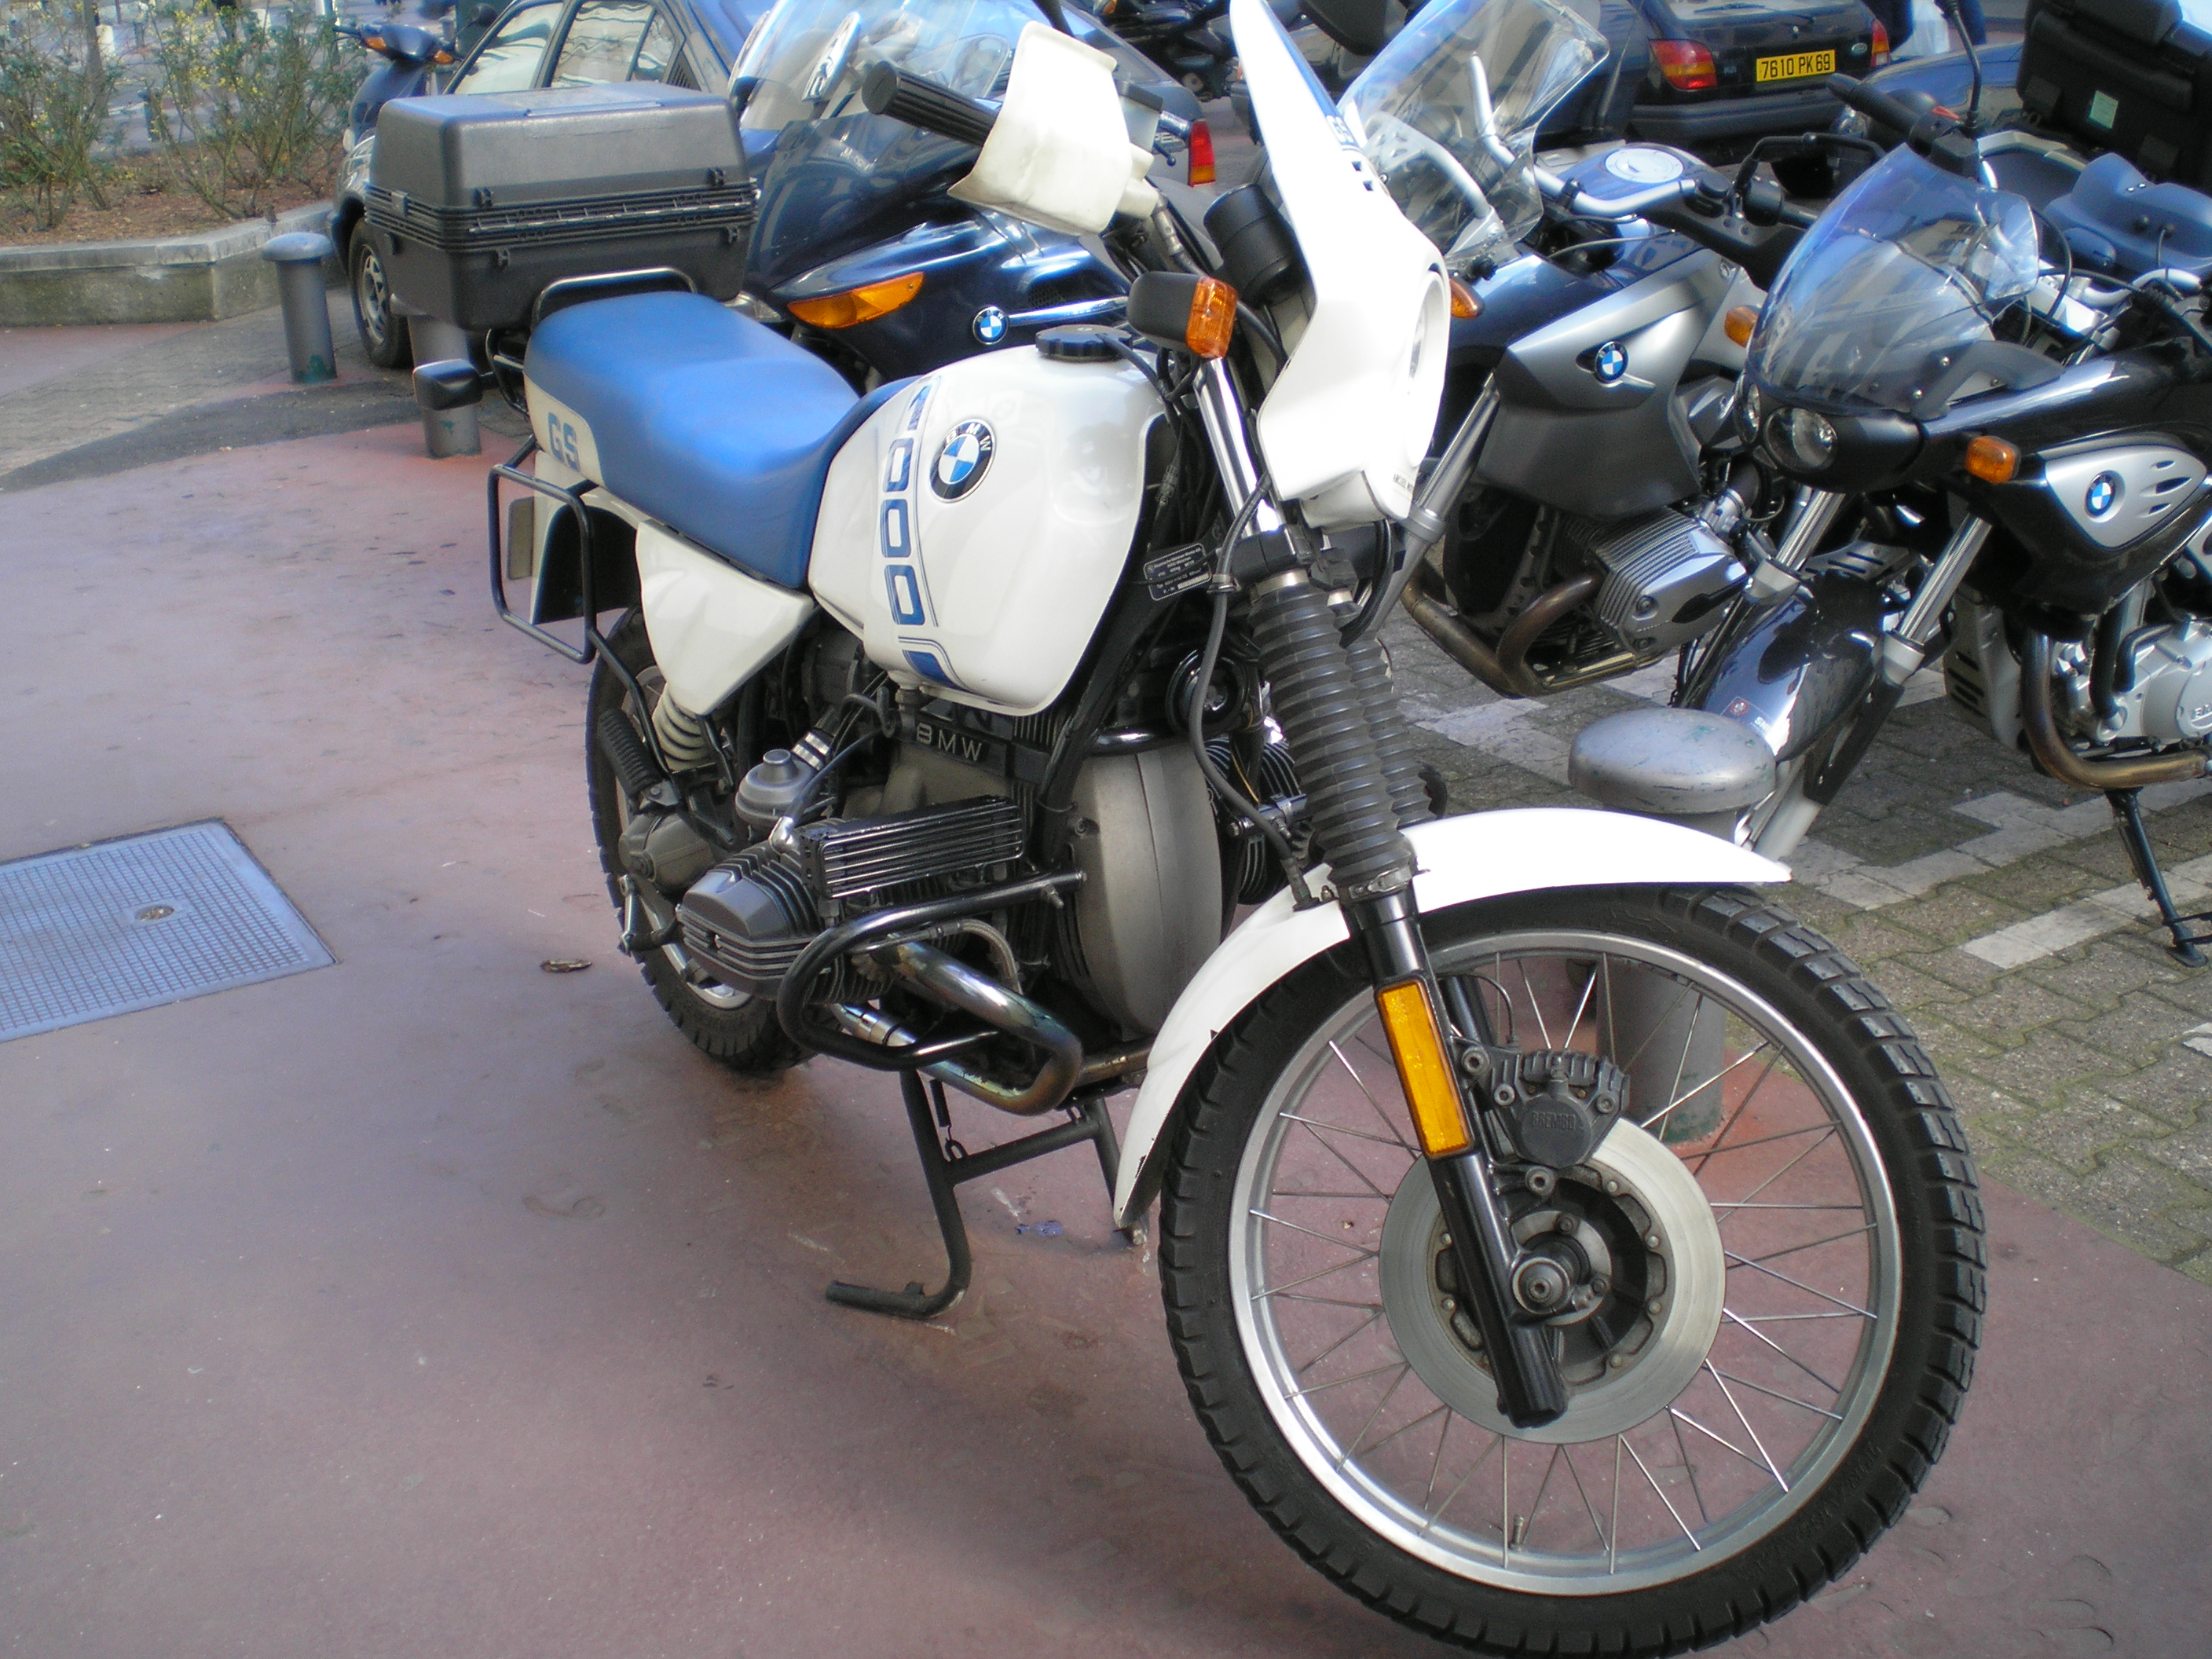 BMW R65 (reduced effect) 1991 images #77445